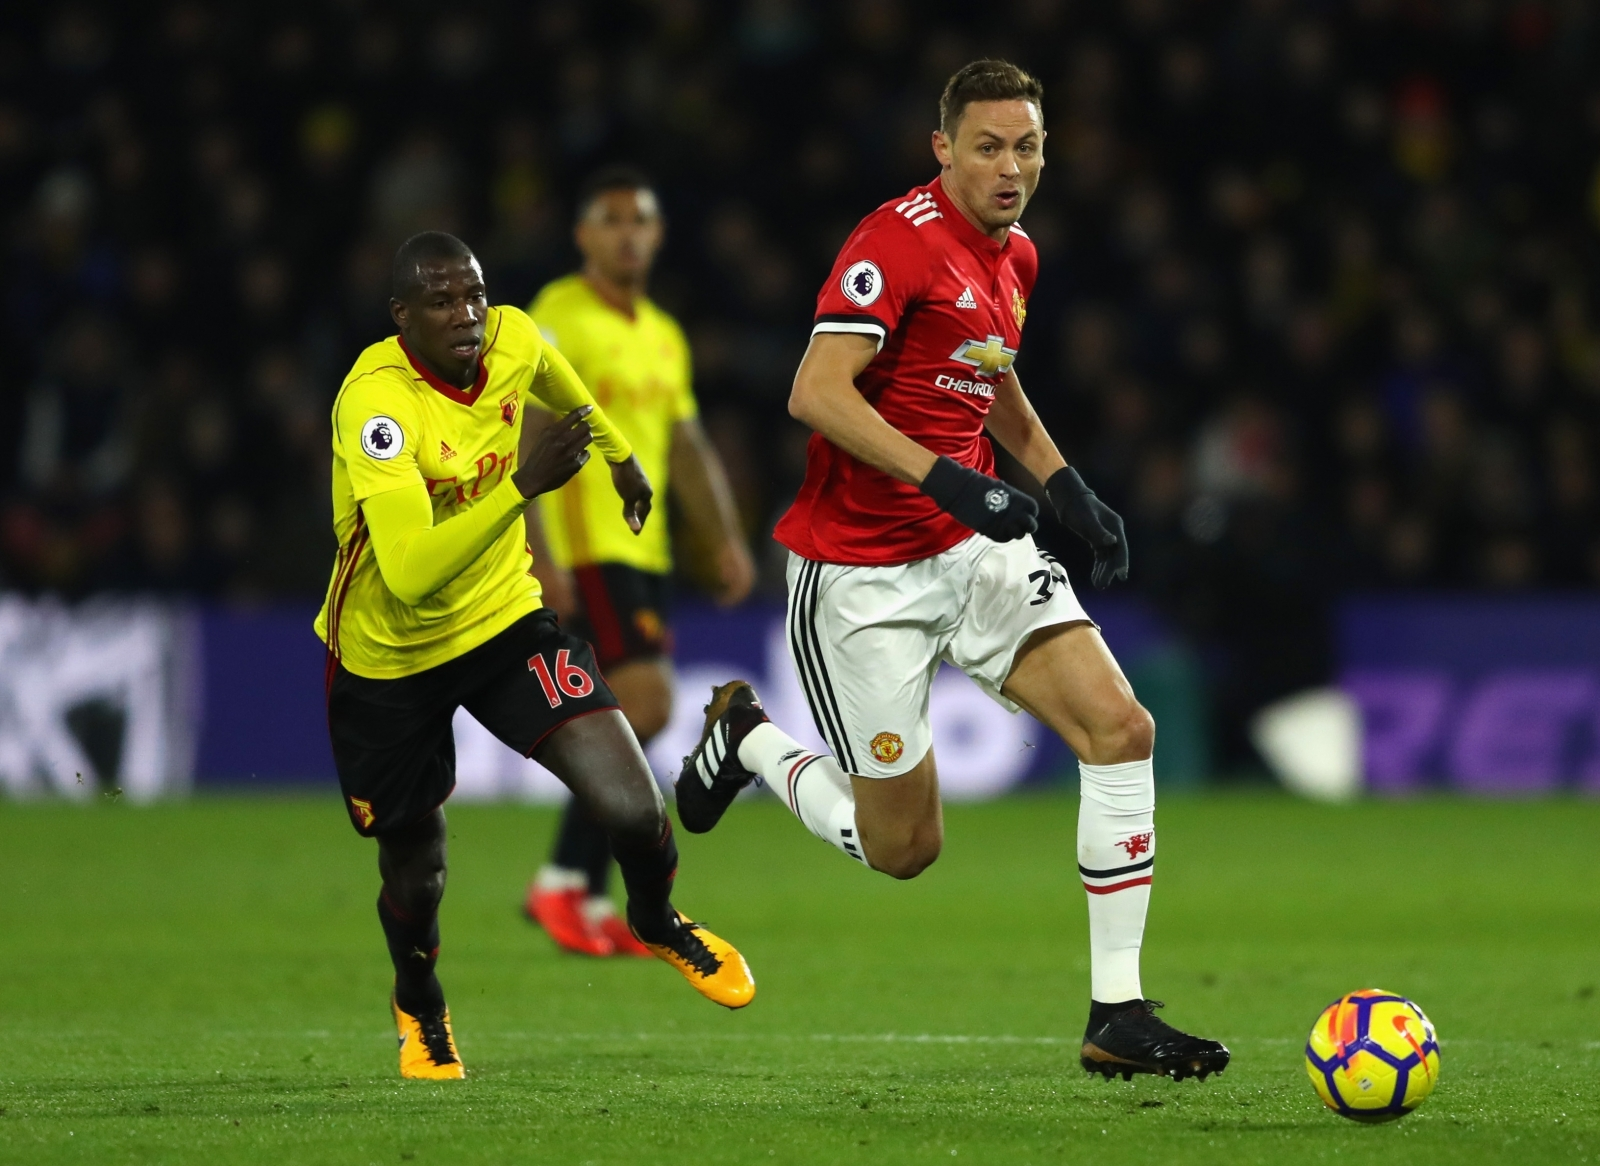 Nemanja Matic doubtful for Arsenal game; Eric Bailly, Phil Jones out